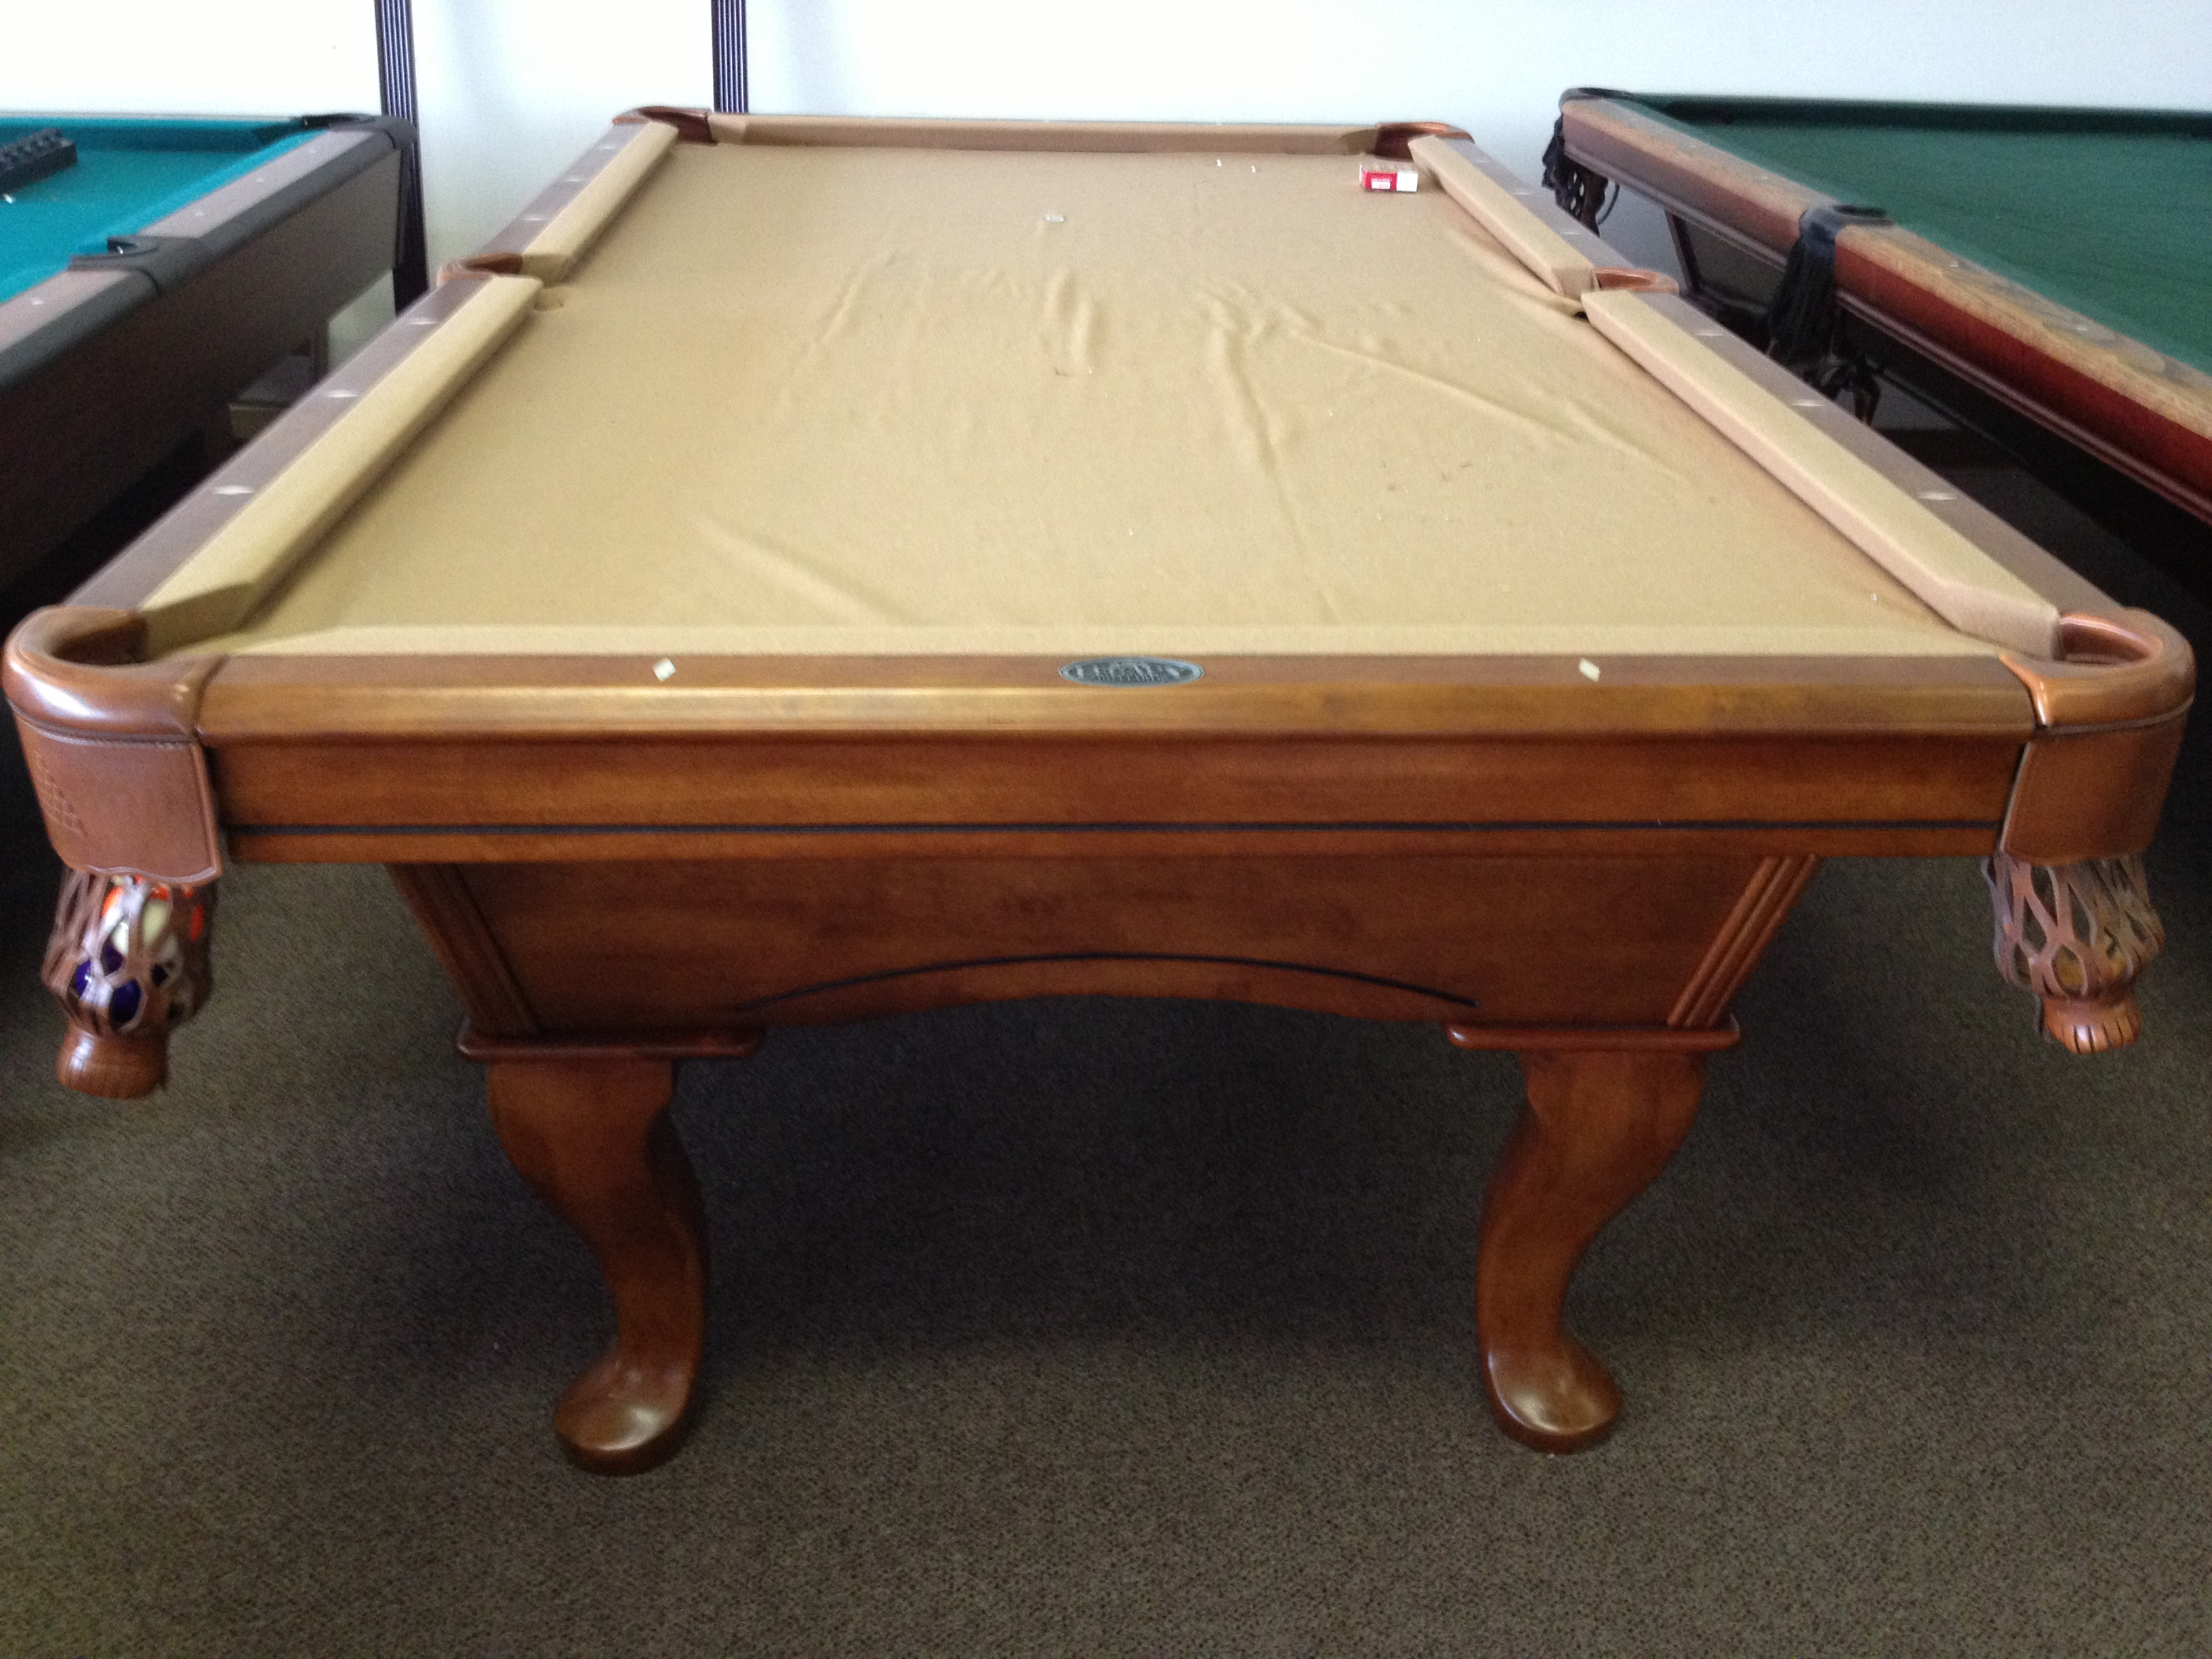 Legacy Used Pool Table